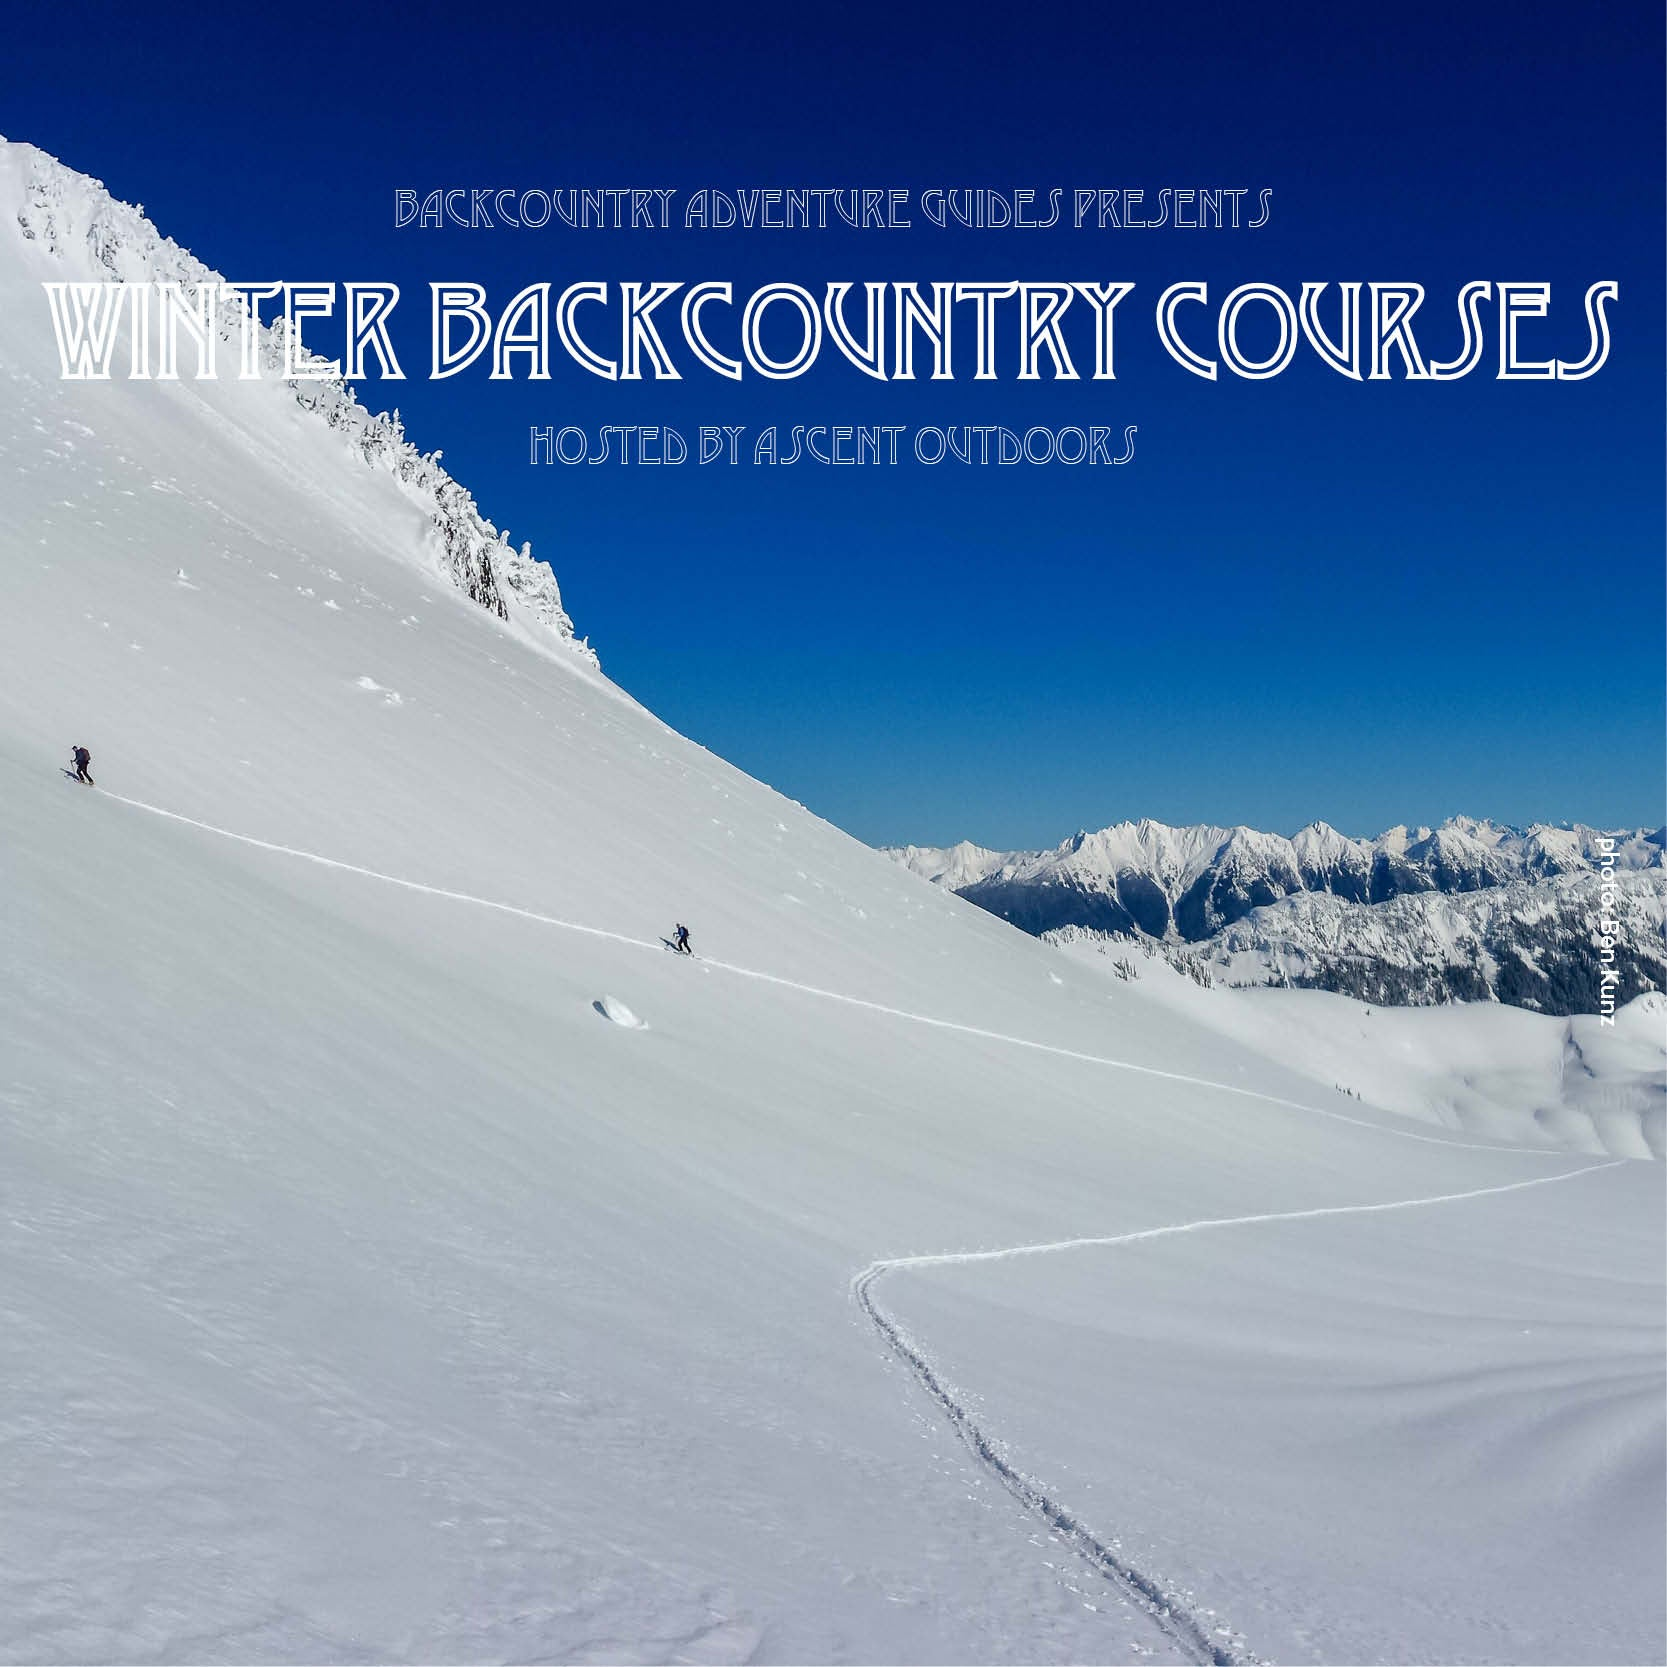 Winter Backcountry Courses